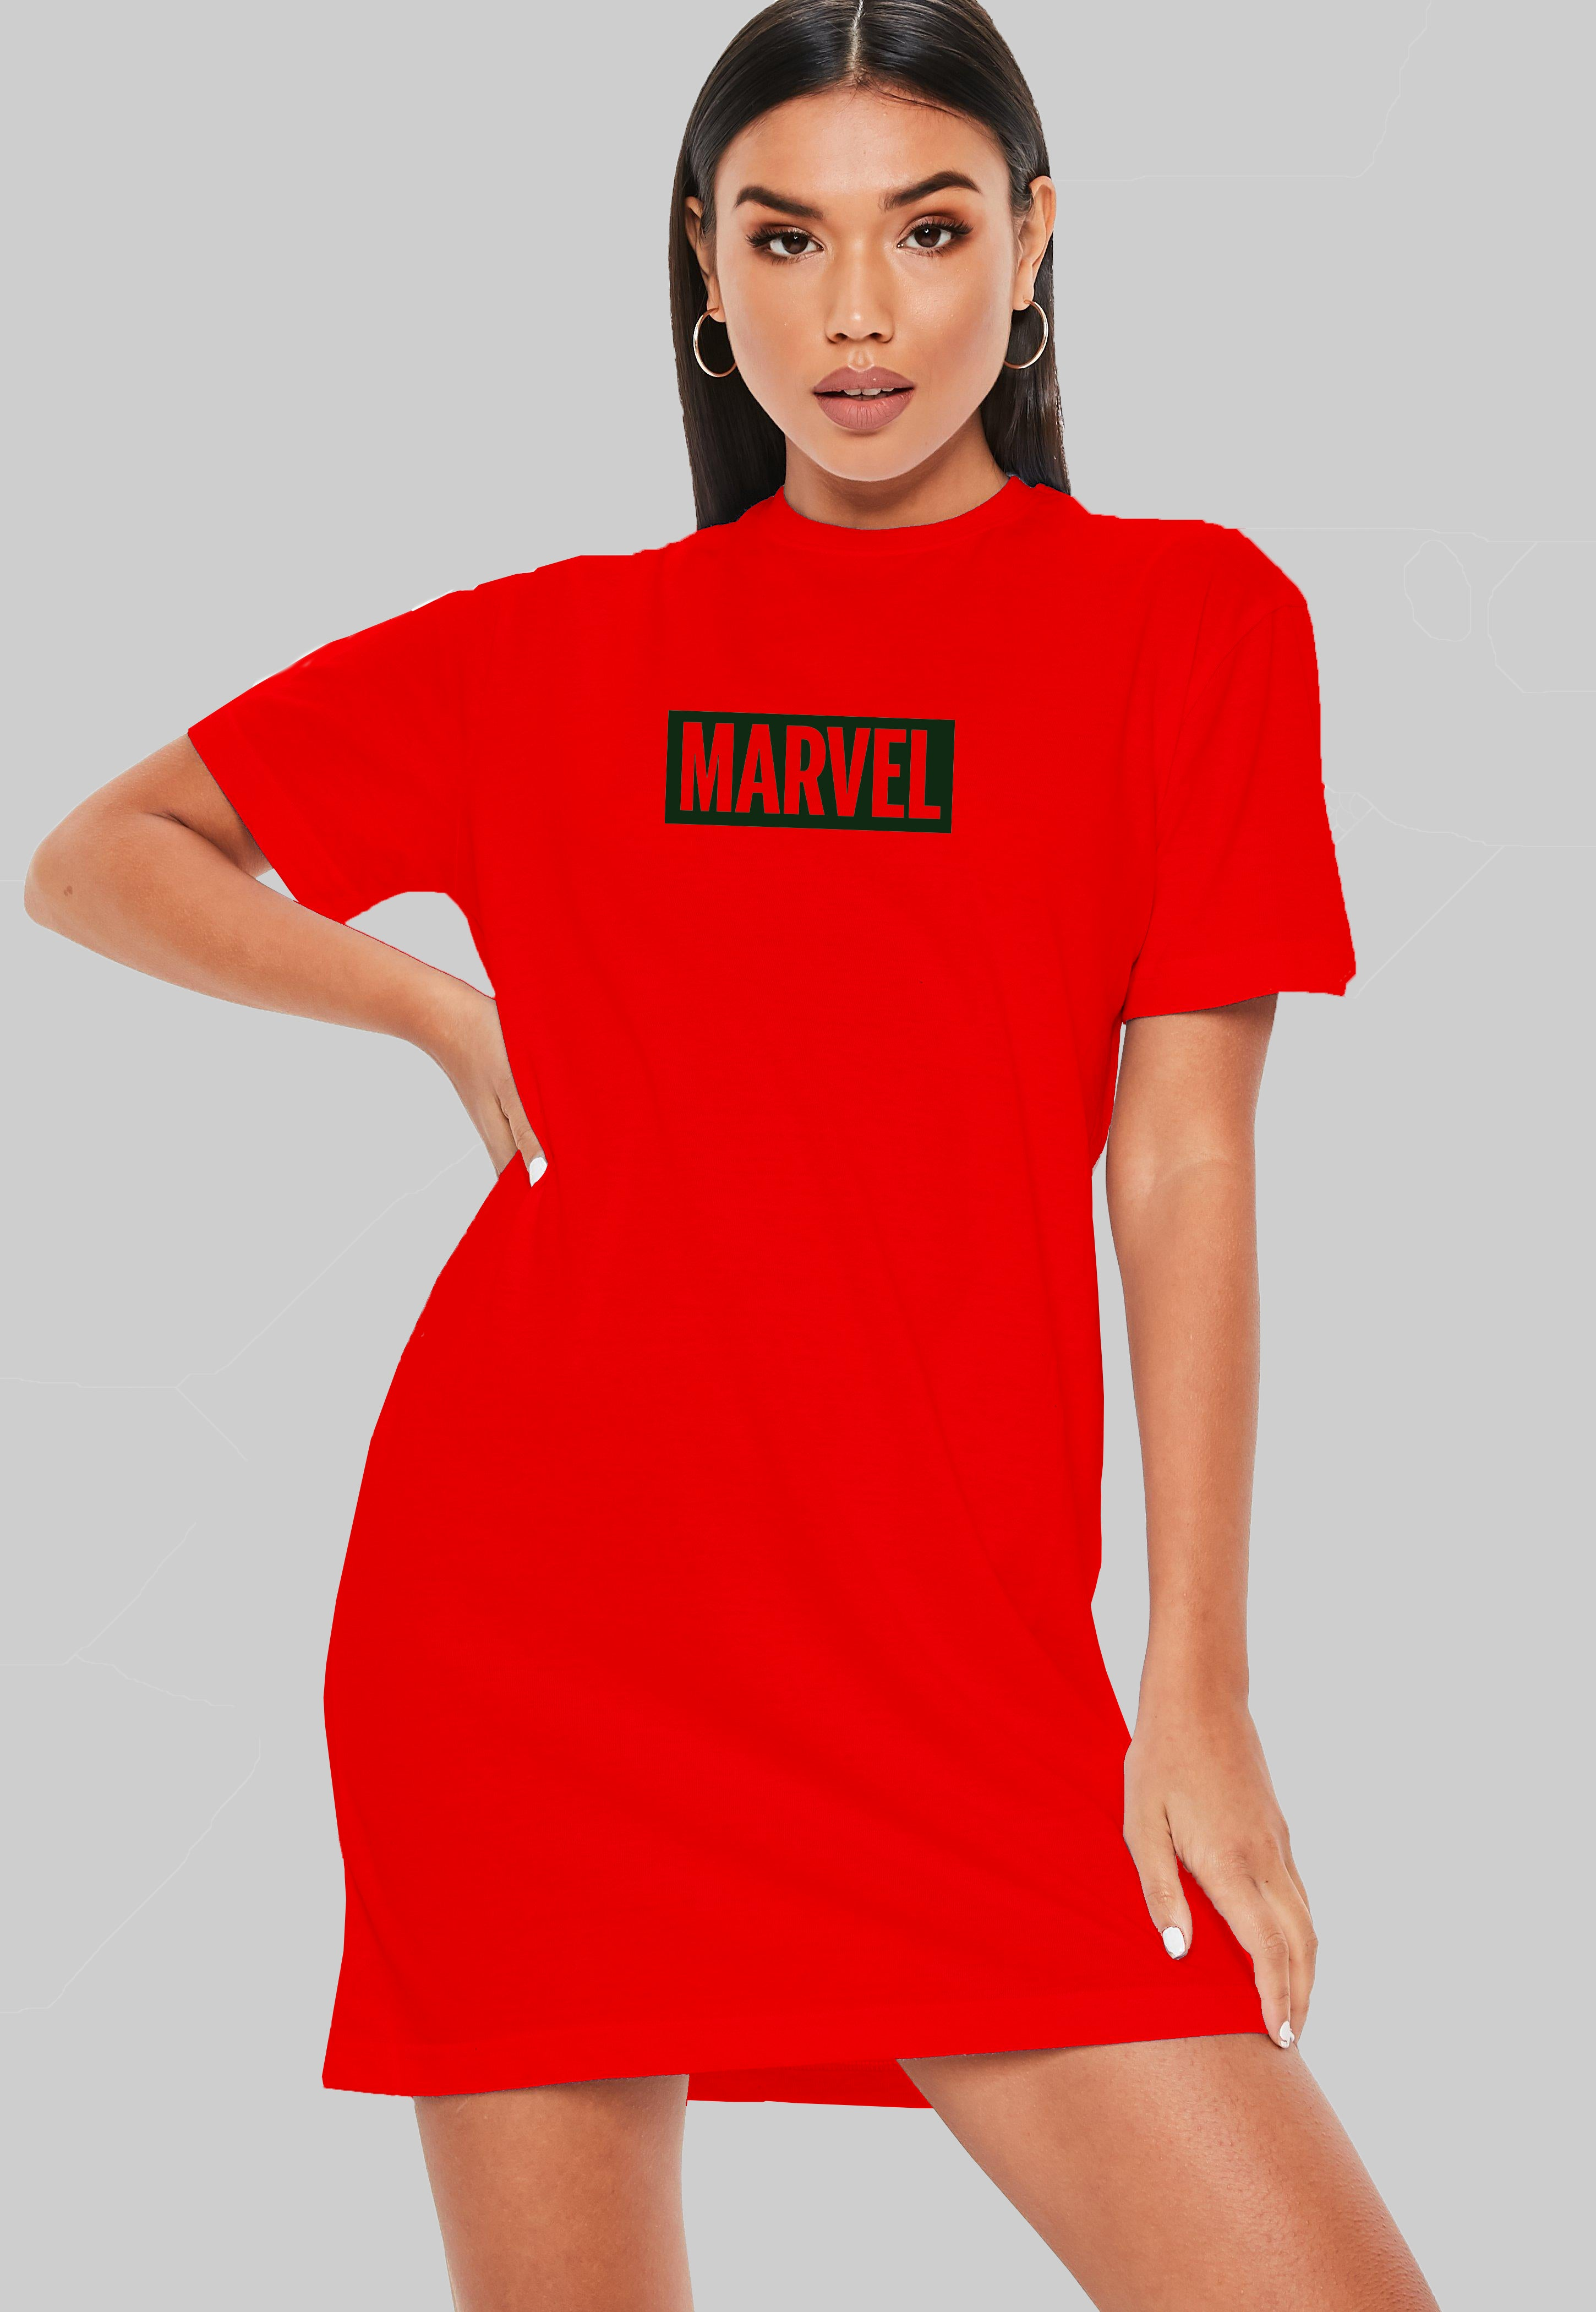 Marvel T-Shirt Dress